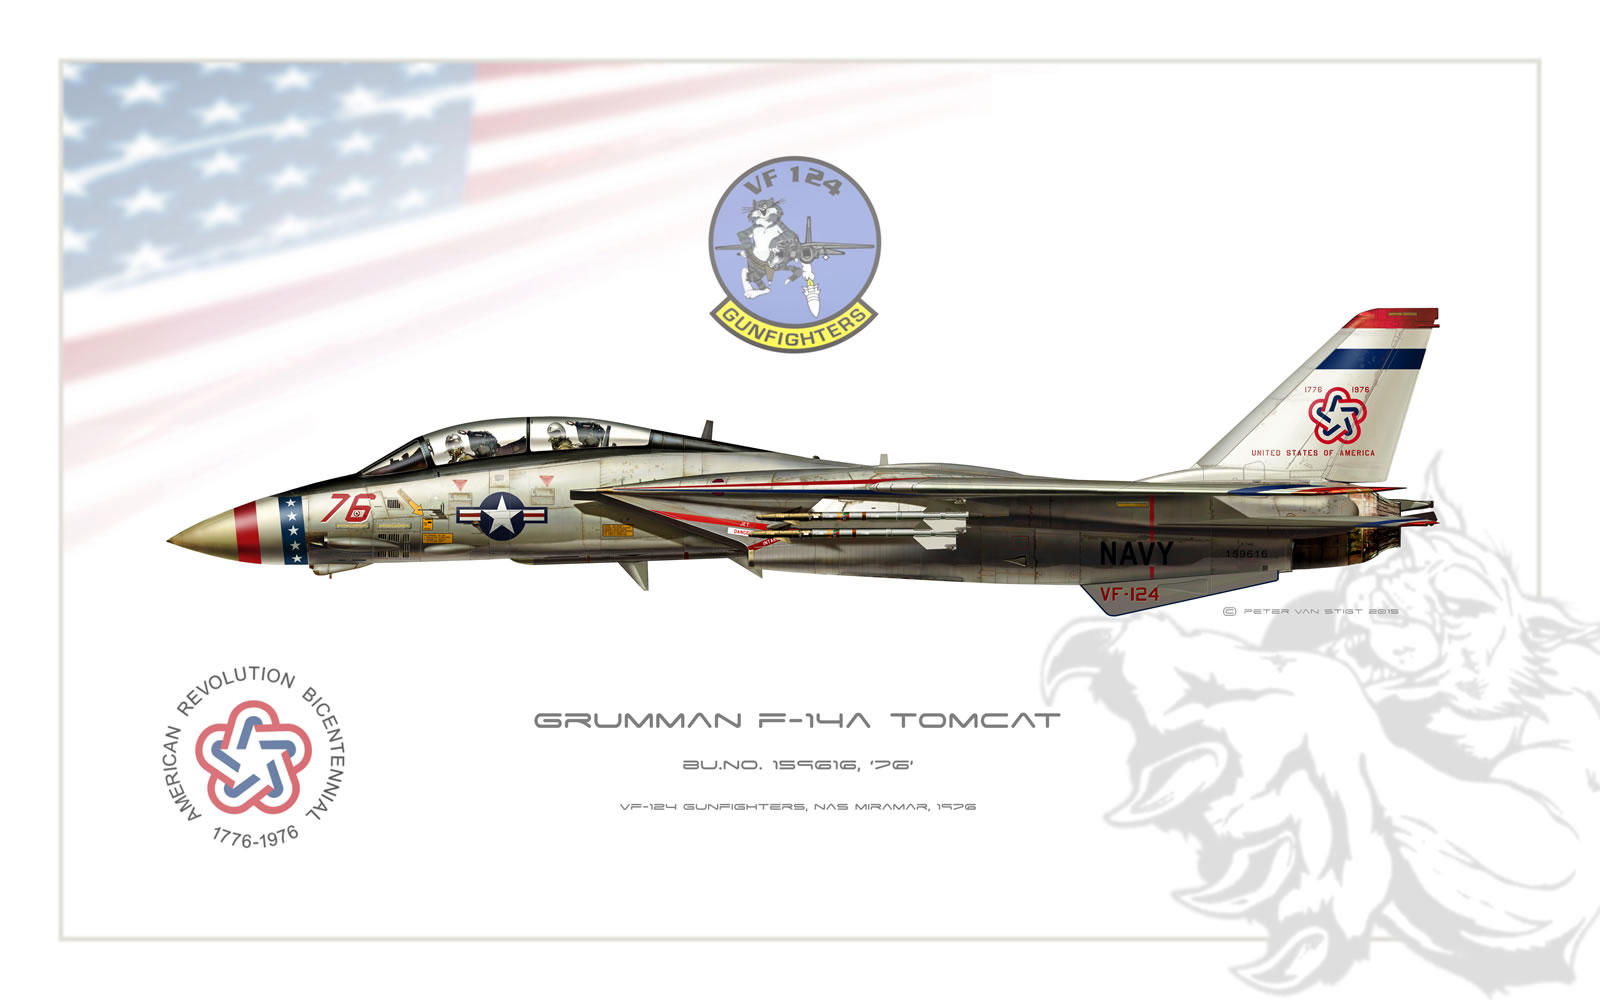 VF-124 Gunfighters Bicentennial F-14 Tomcat Profile